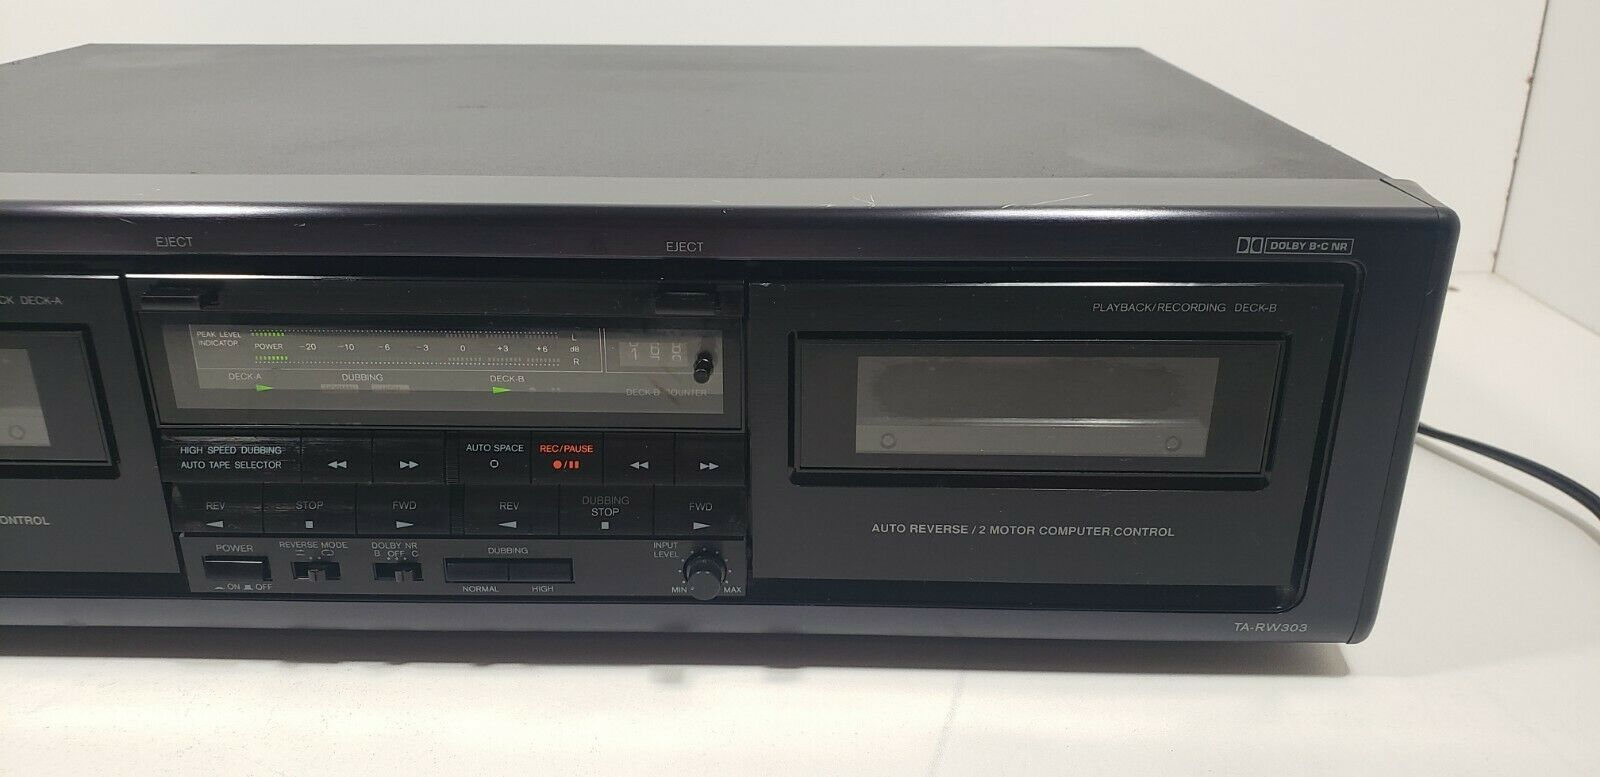 Onkyo Stereo Cassette Tape Deck TA-RW303 Tested image 2